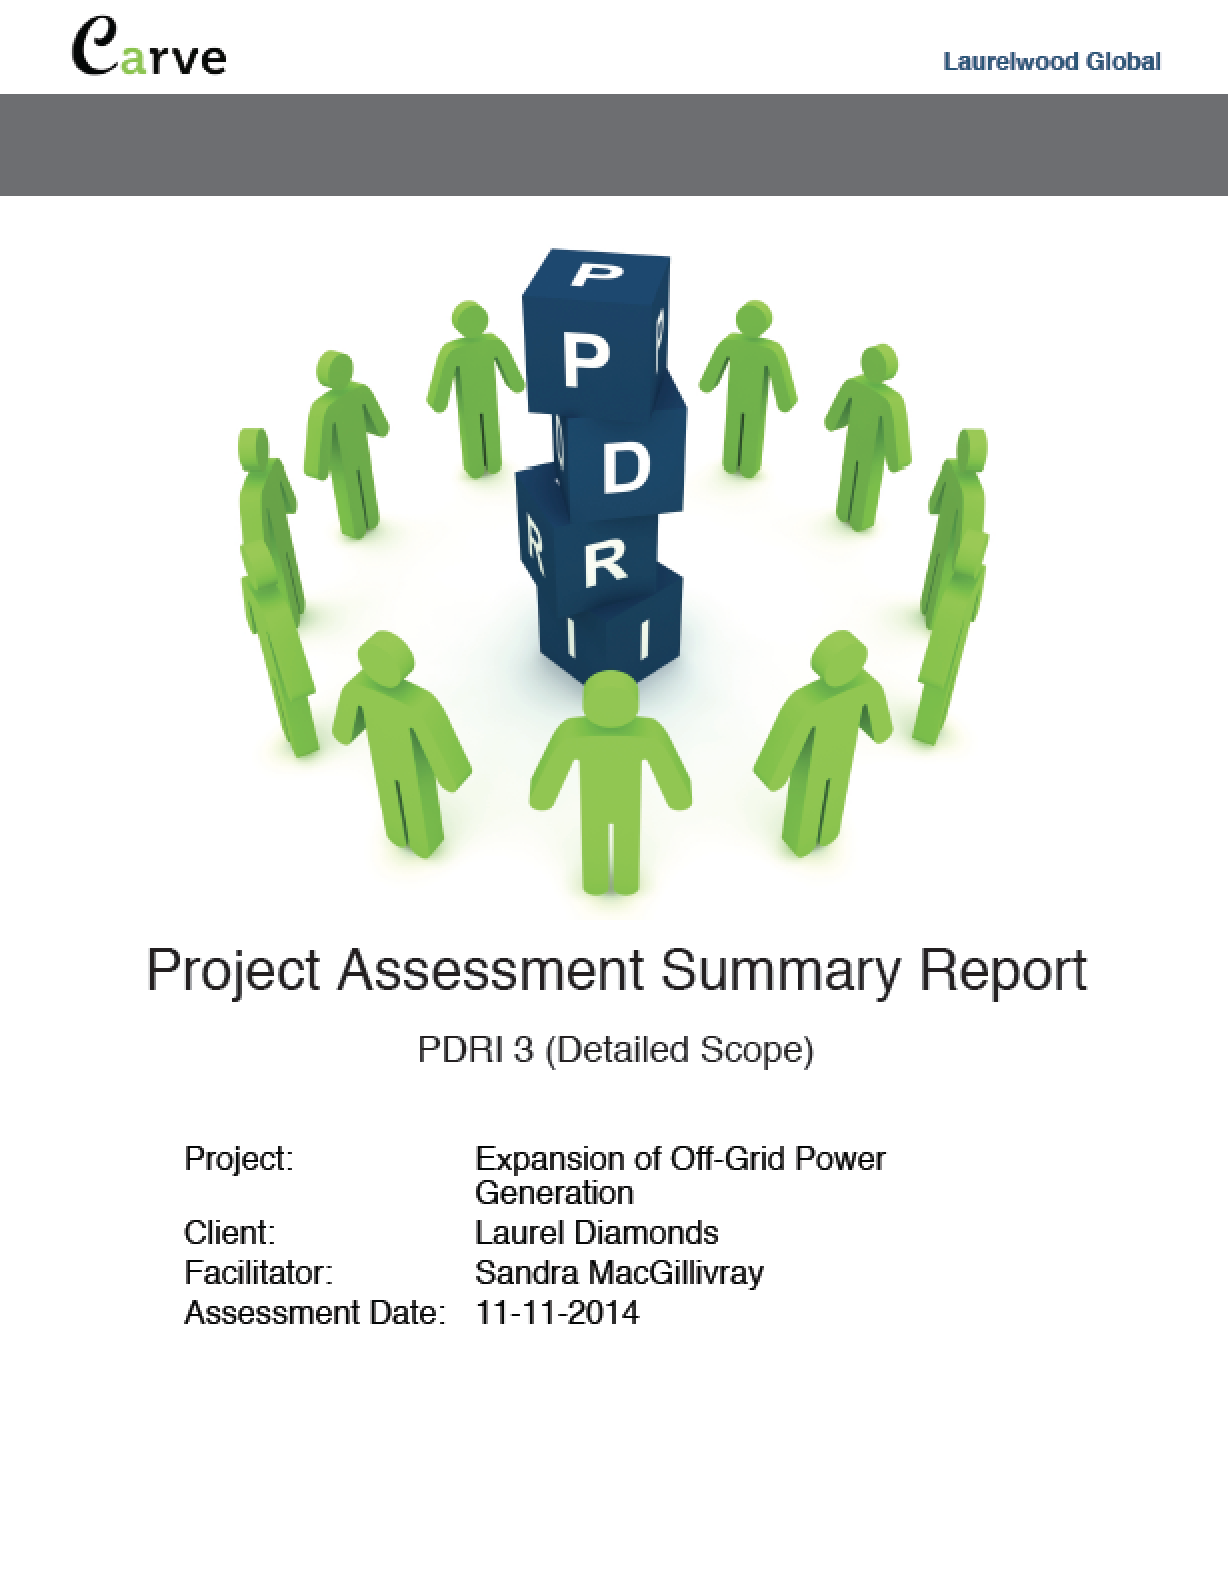 PDF summary report generated for the PDRI assessment desired.